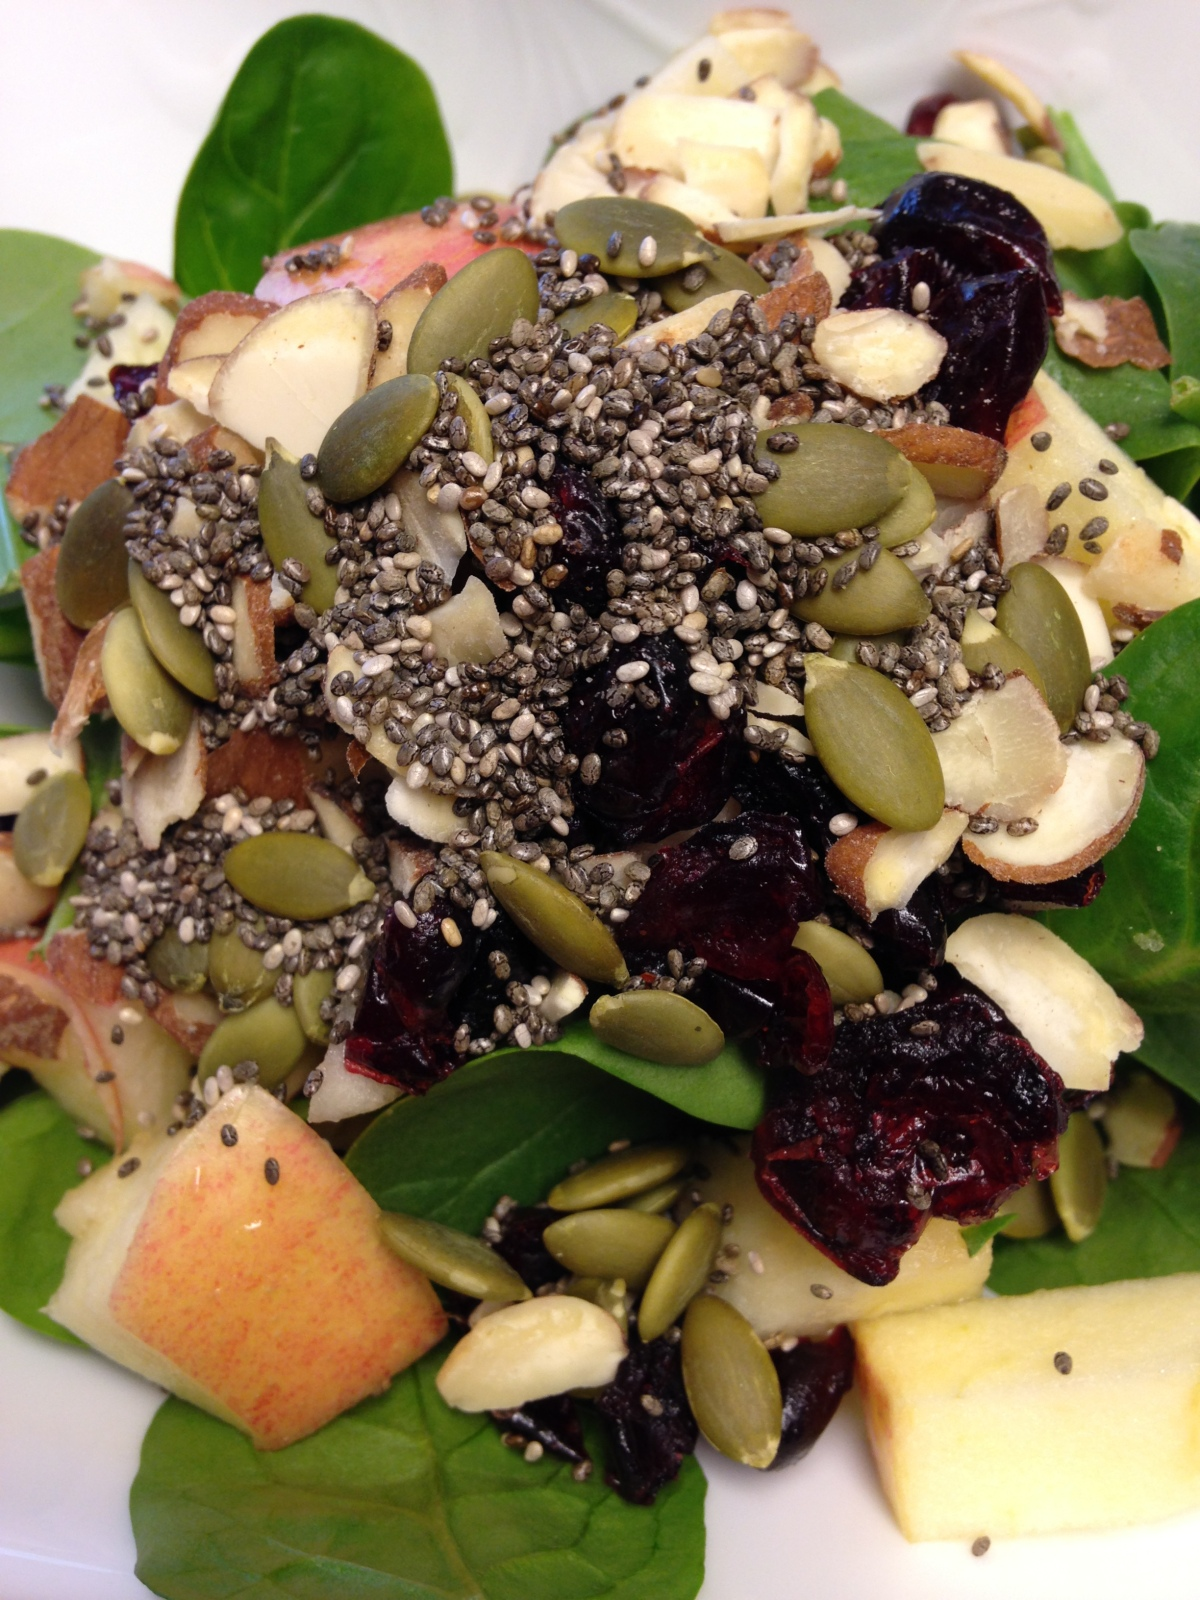 Healthy Fruit and Nut and Seed Salad